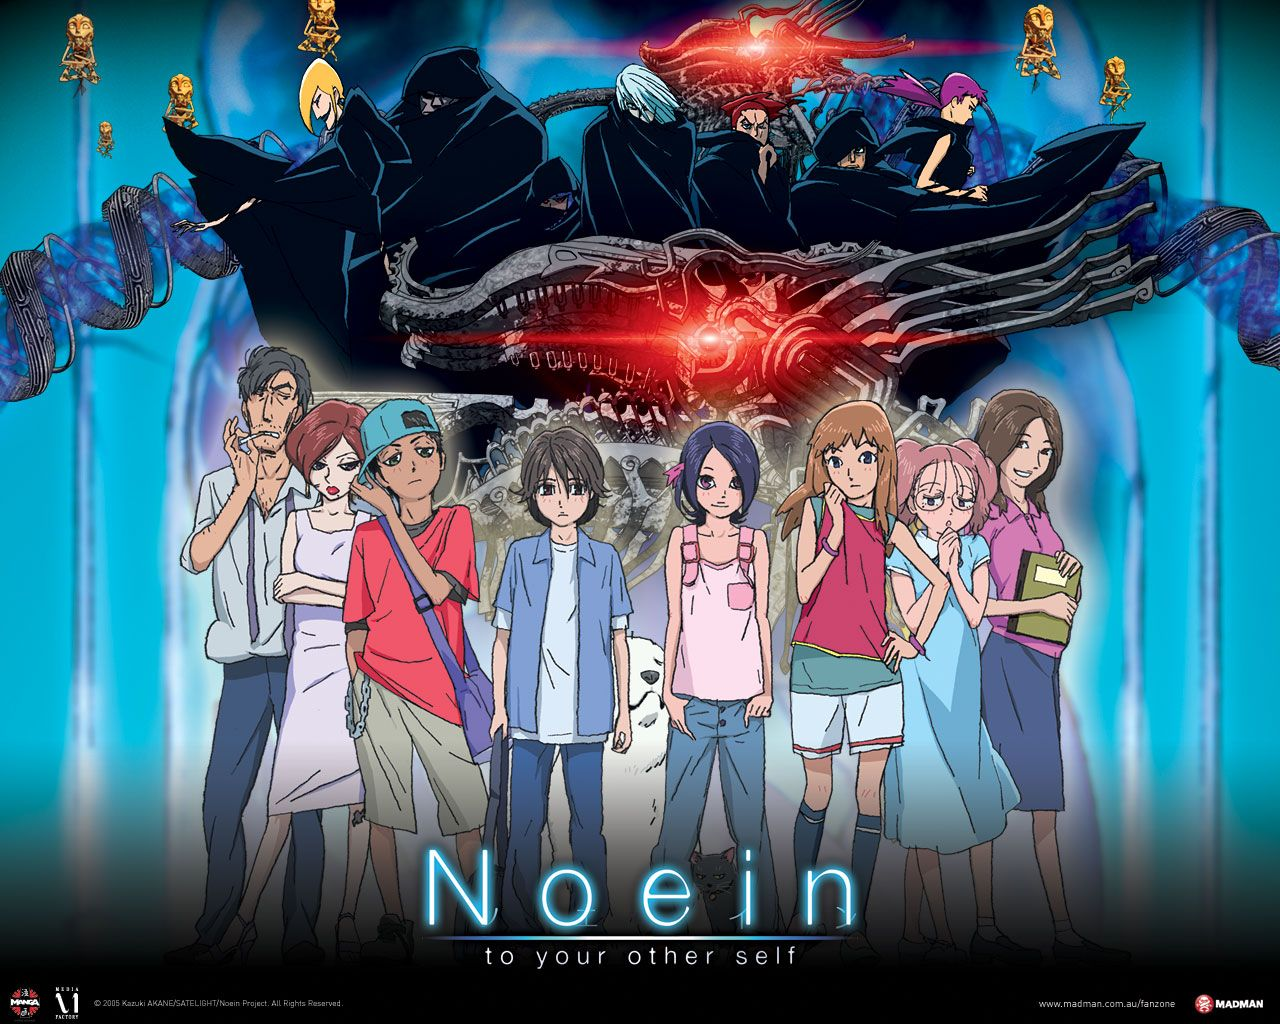 Noein. The only anime I will ever like besides Sailor Moon